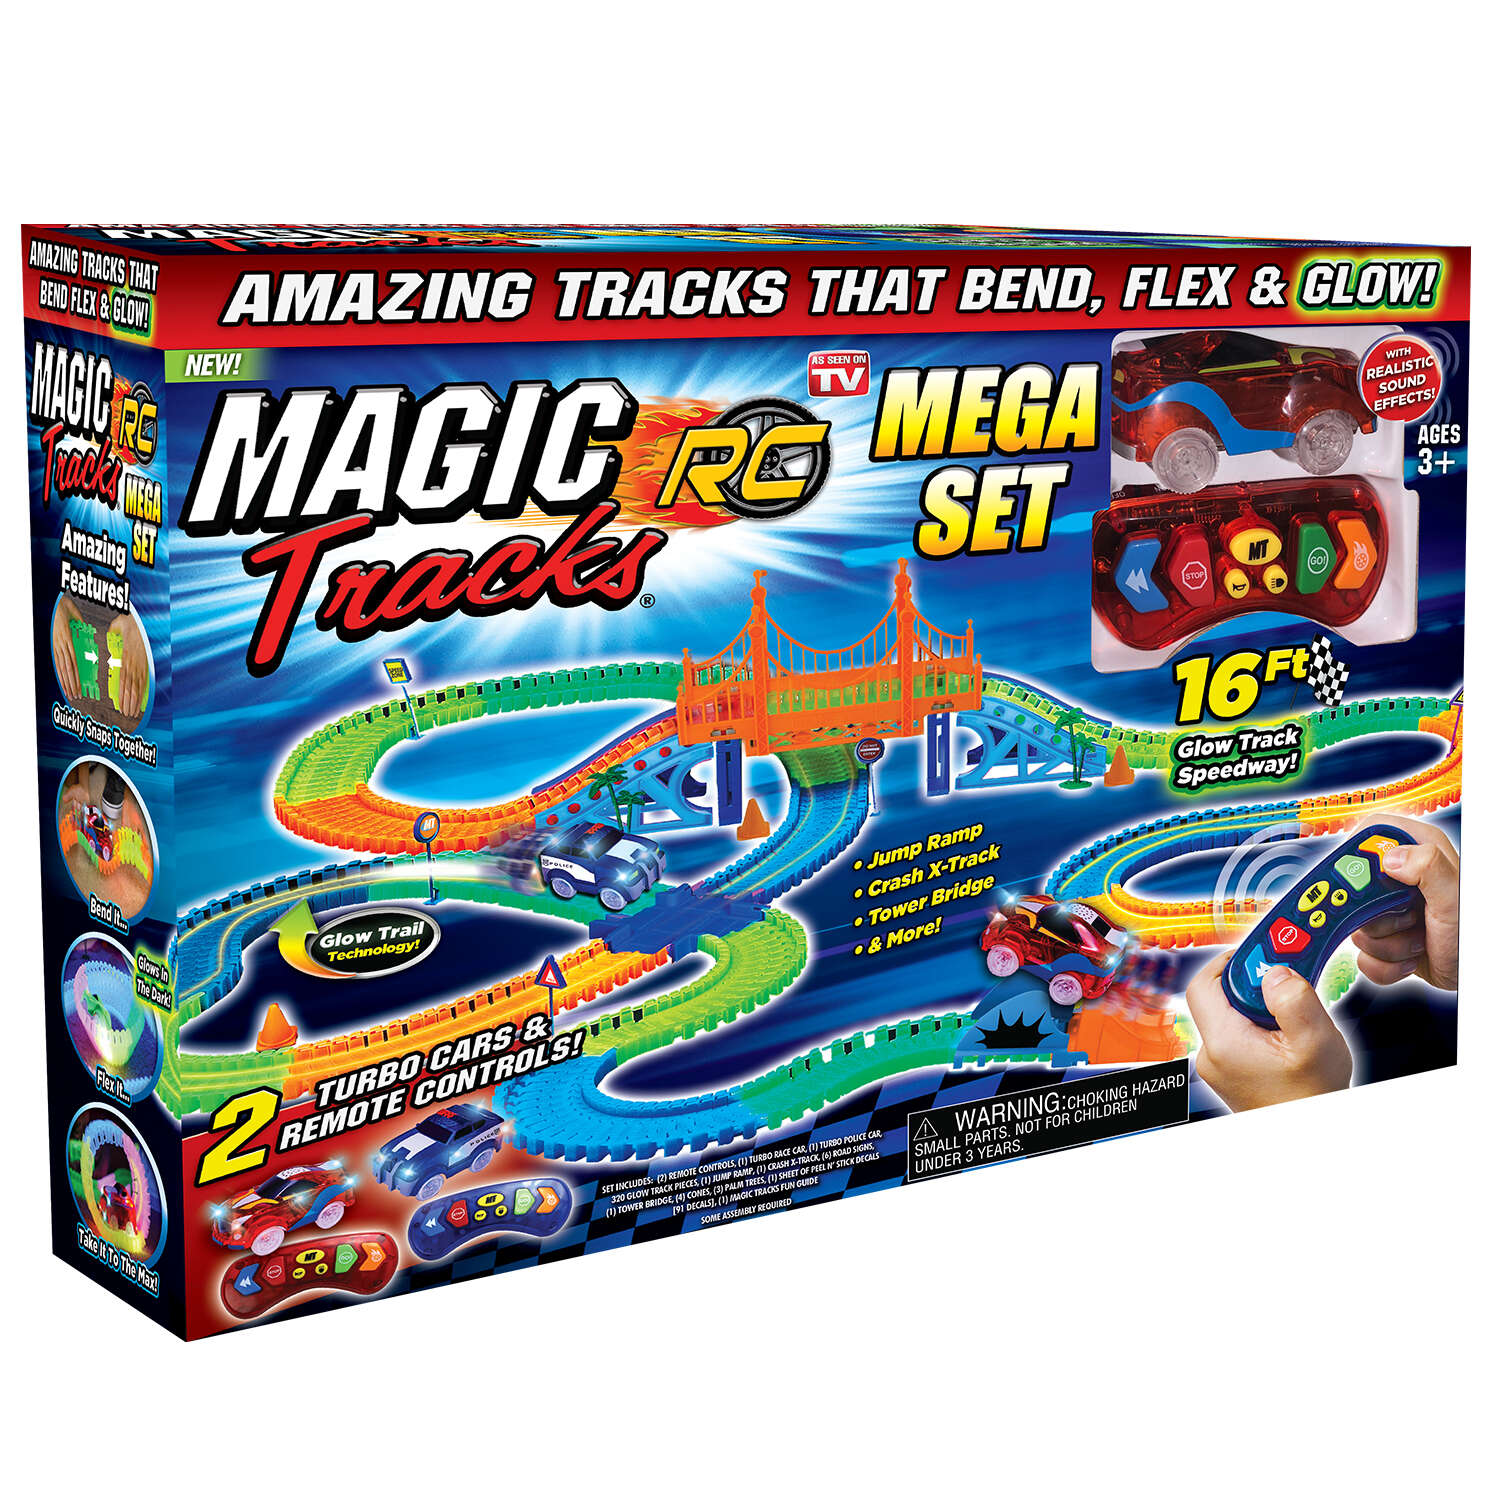 Magic Tracks  As Seen On TV Mega Set  Glow In The Dark Car Race Tracks  Plastic  Multi-Colored  377